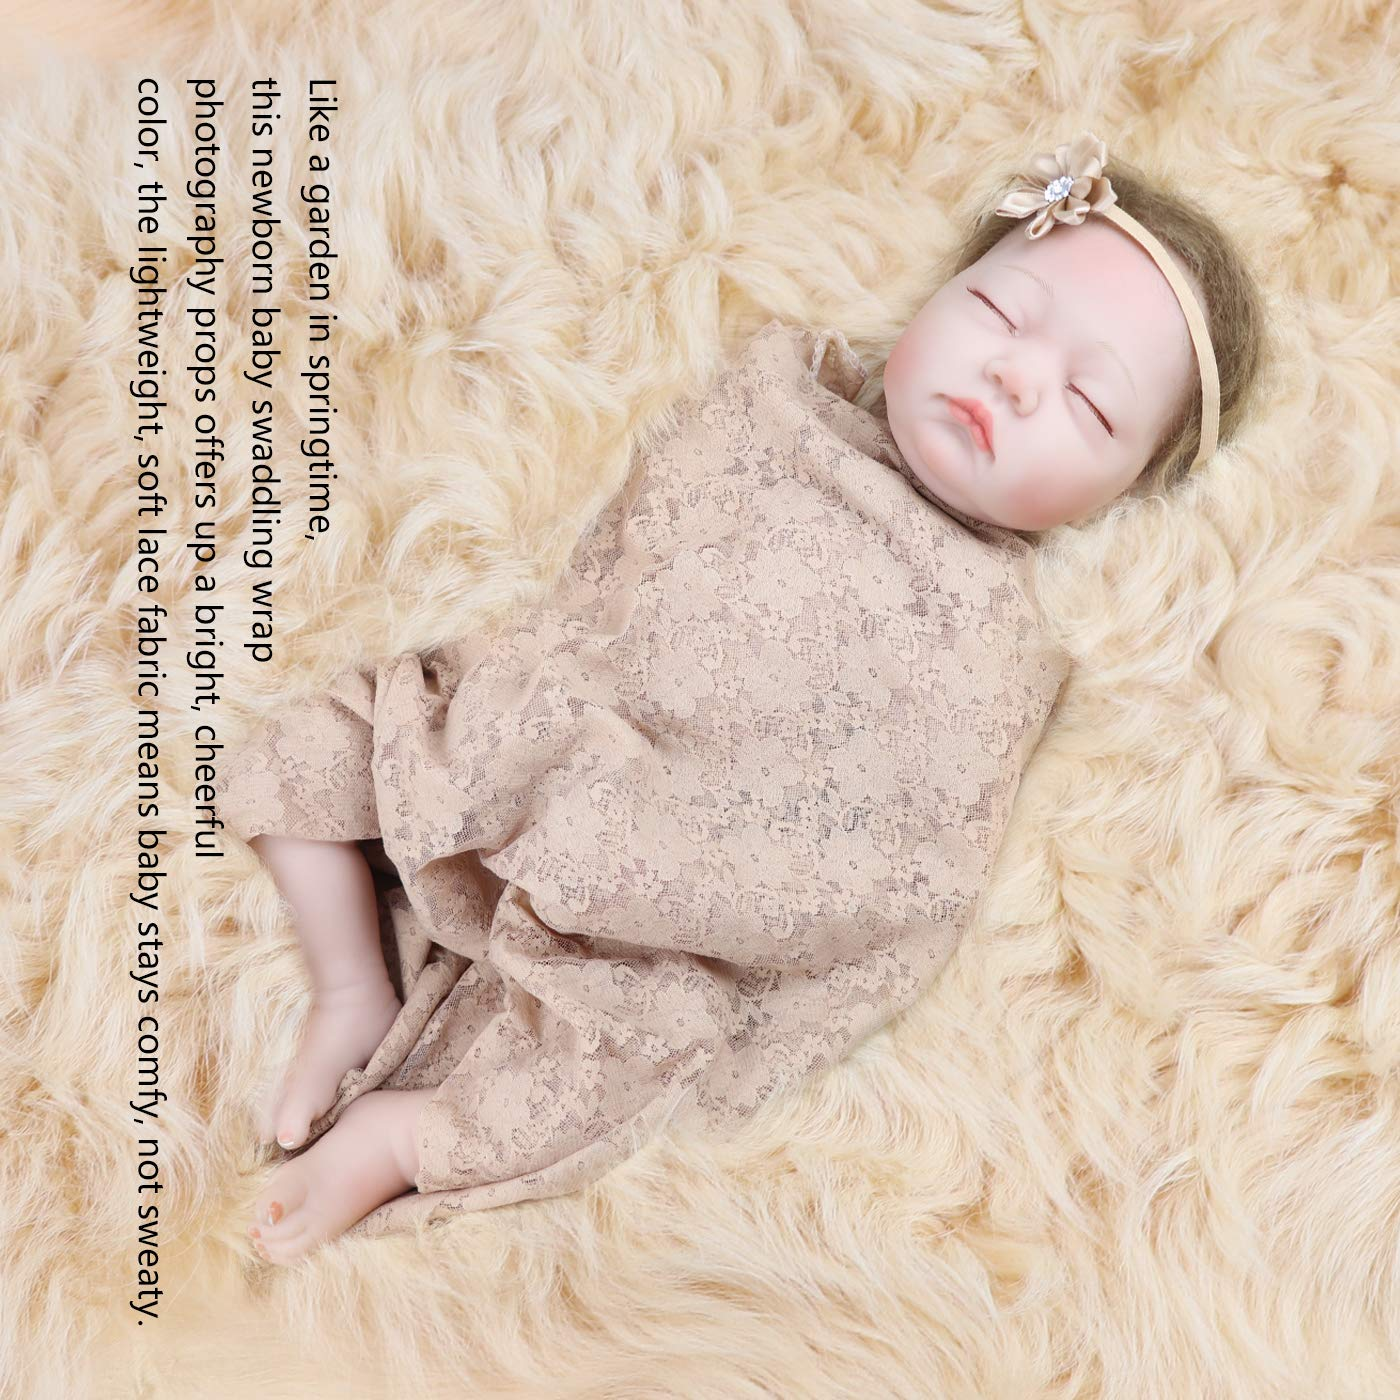 Receiving Blanket with Headbands BQUBO Newborn Baby Floral PrintedBaby Shower Swaddle Gift 3 Pack